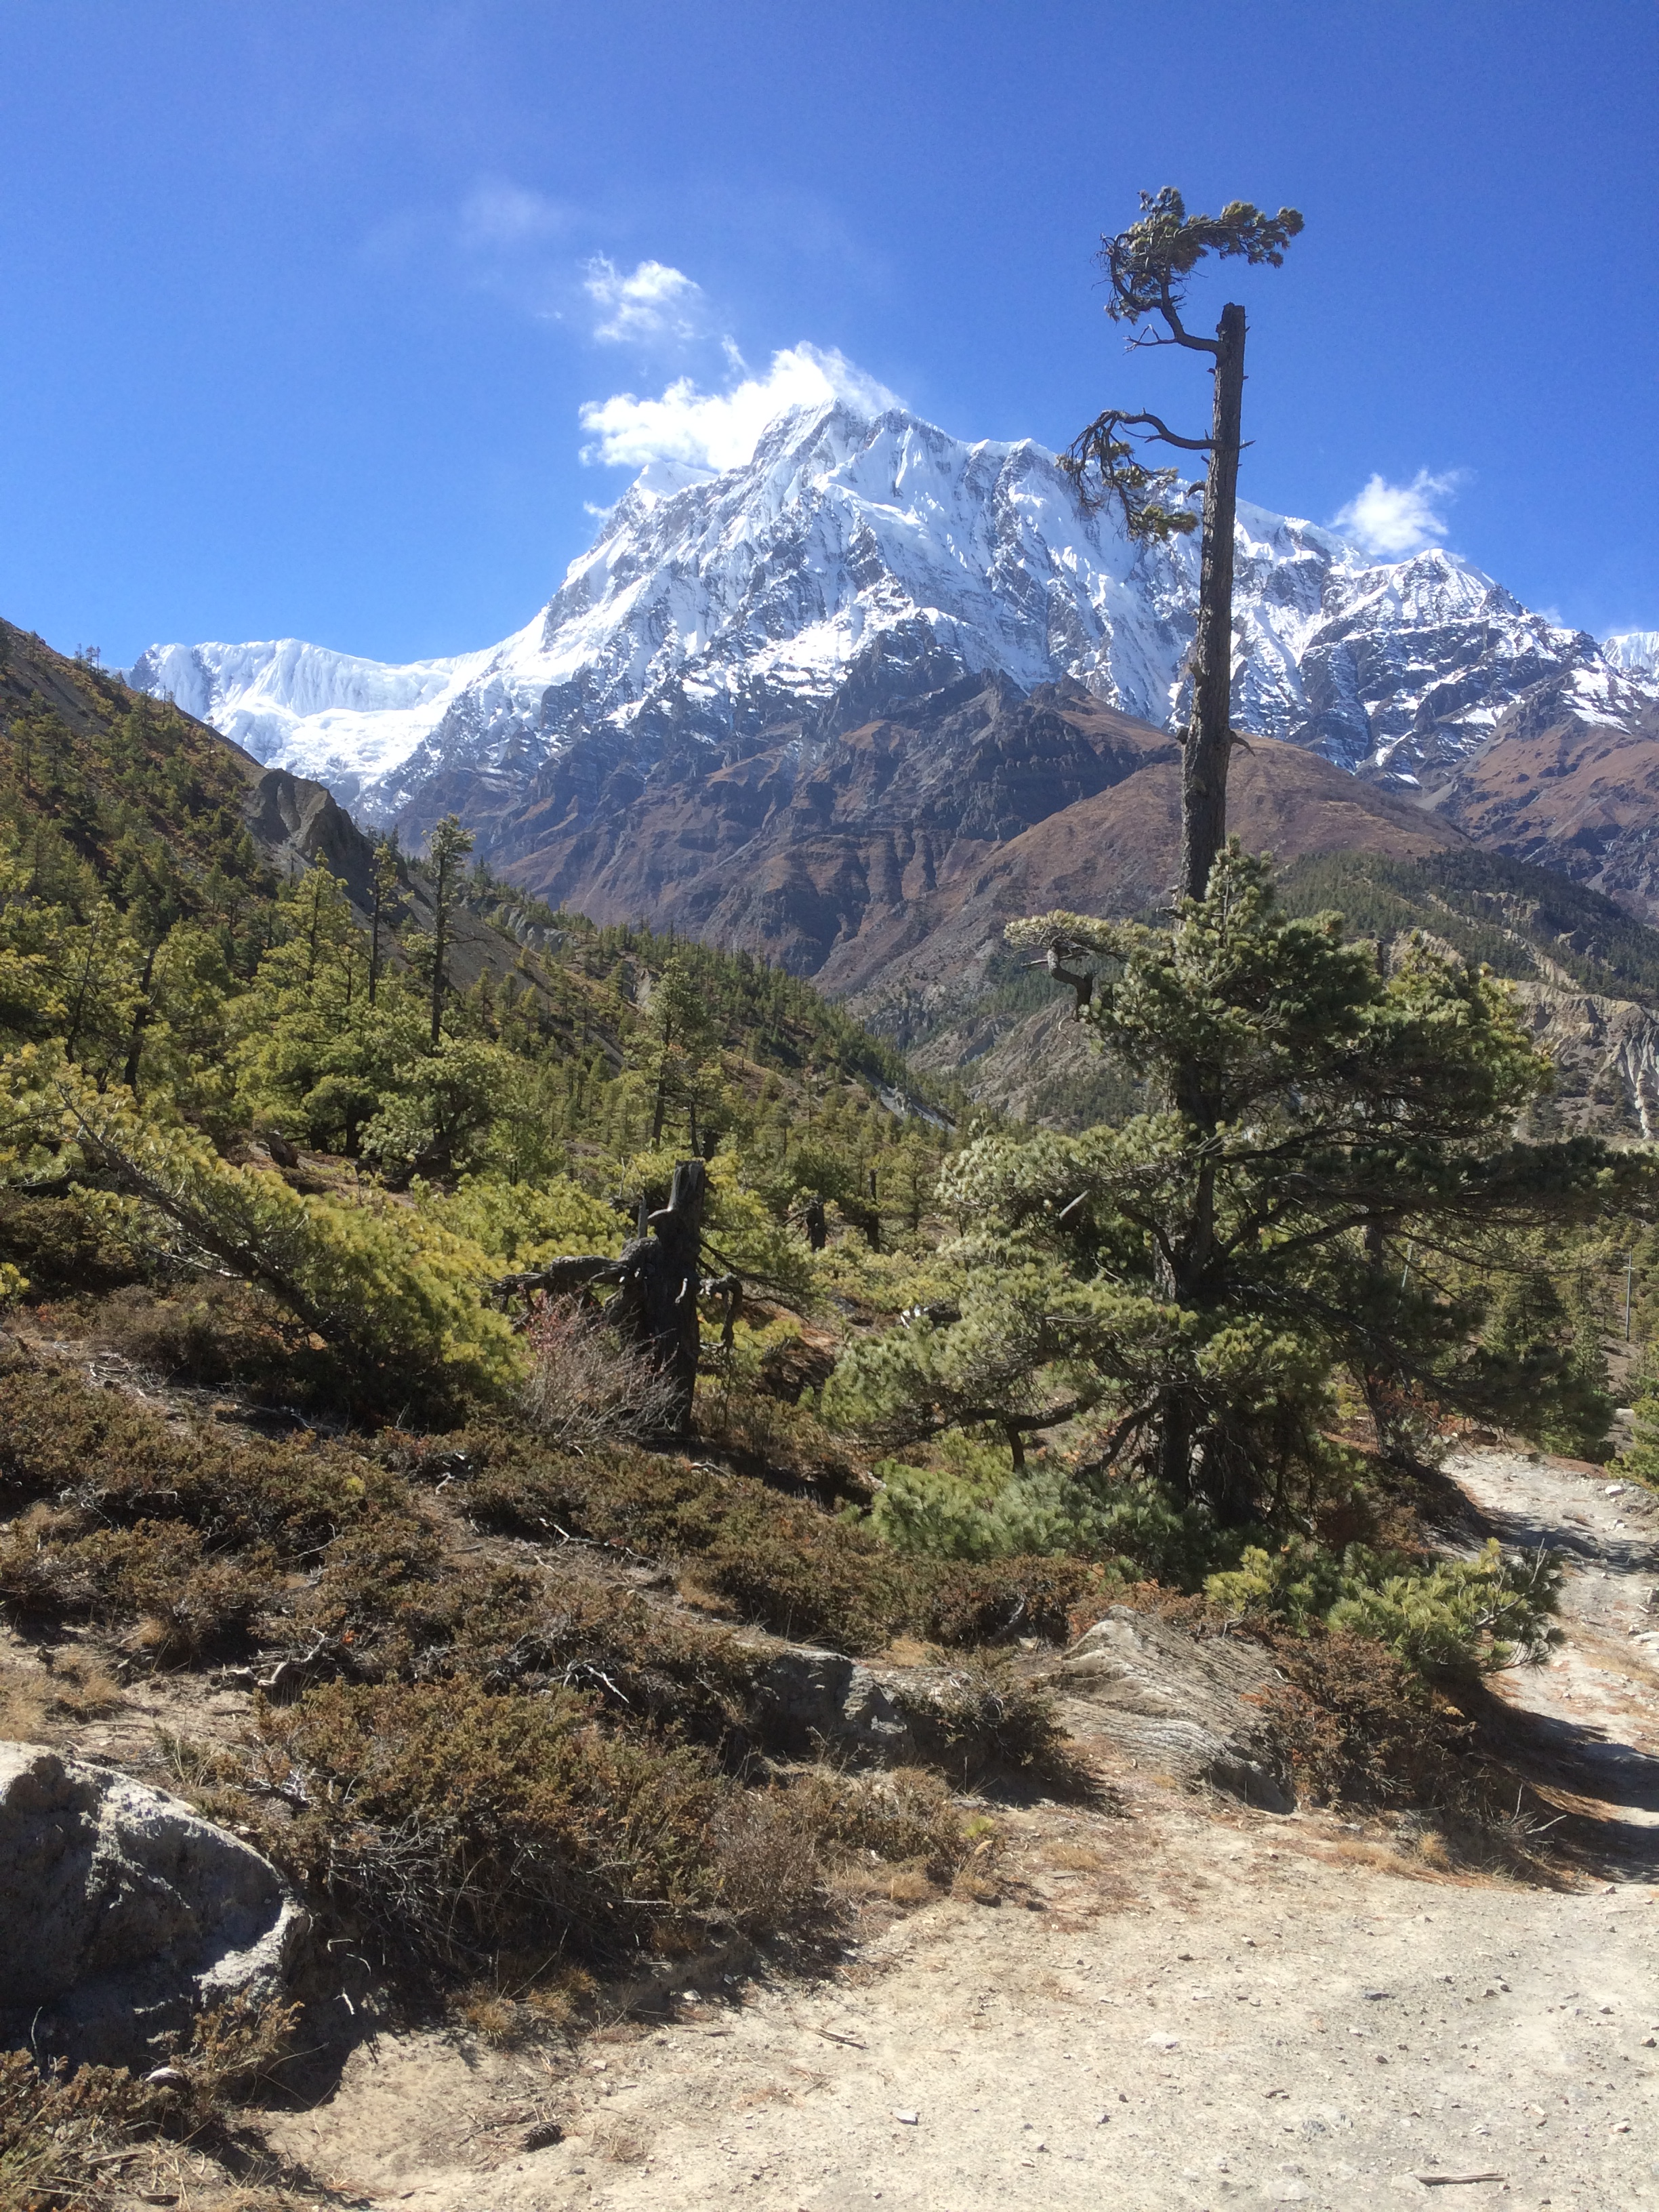 Annapurna IV from Pisang